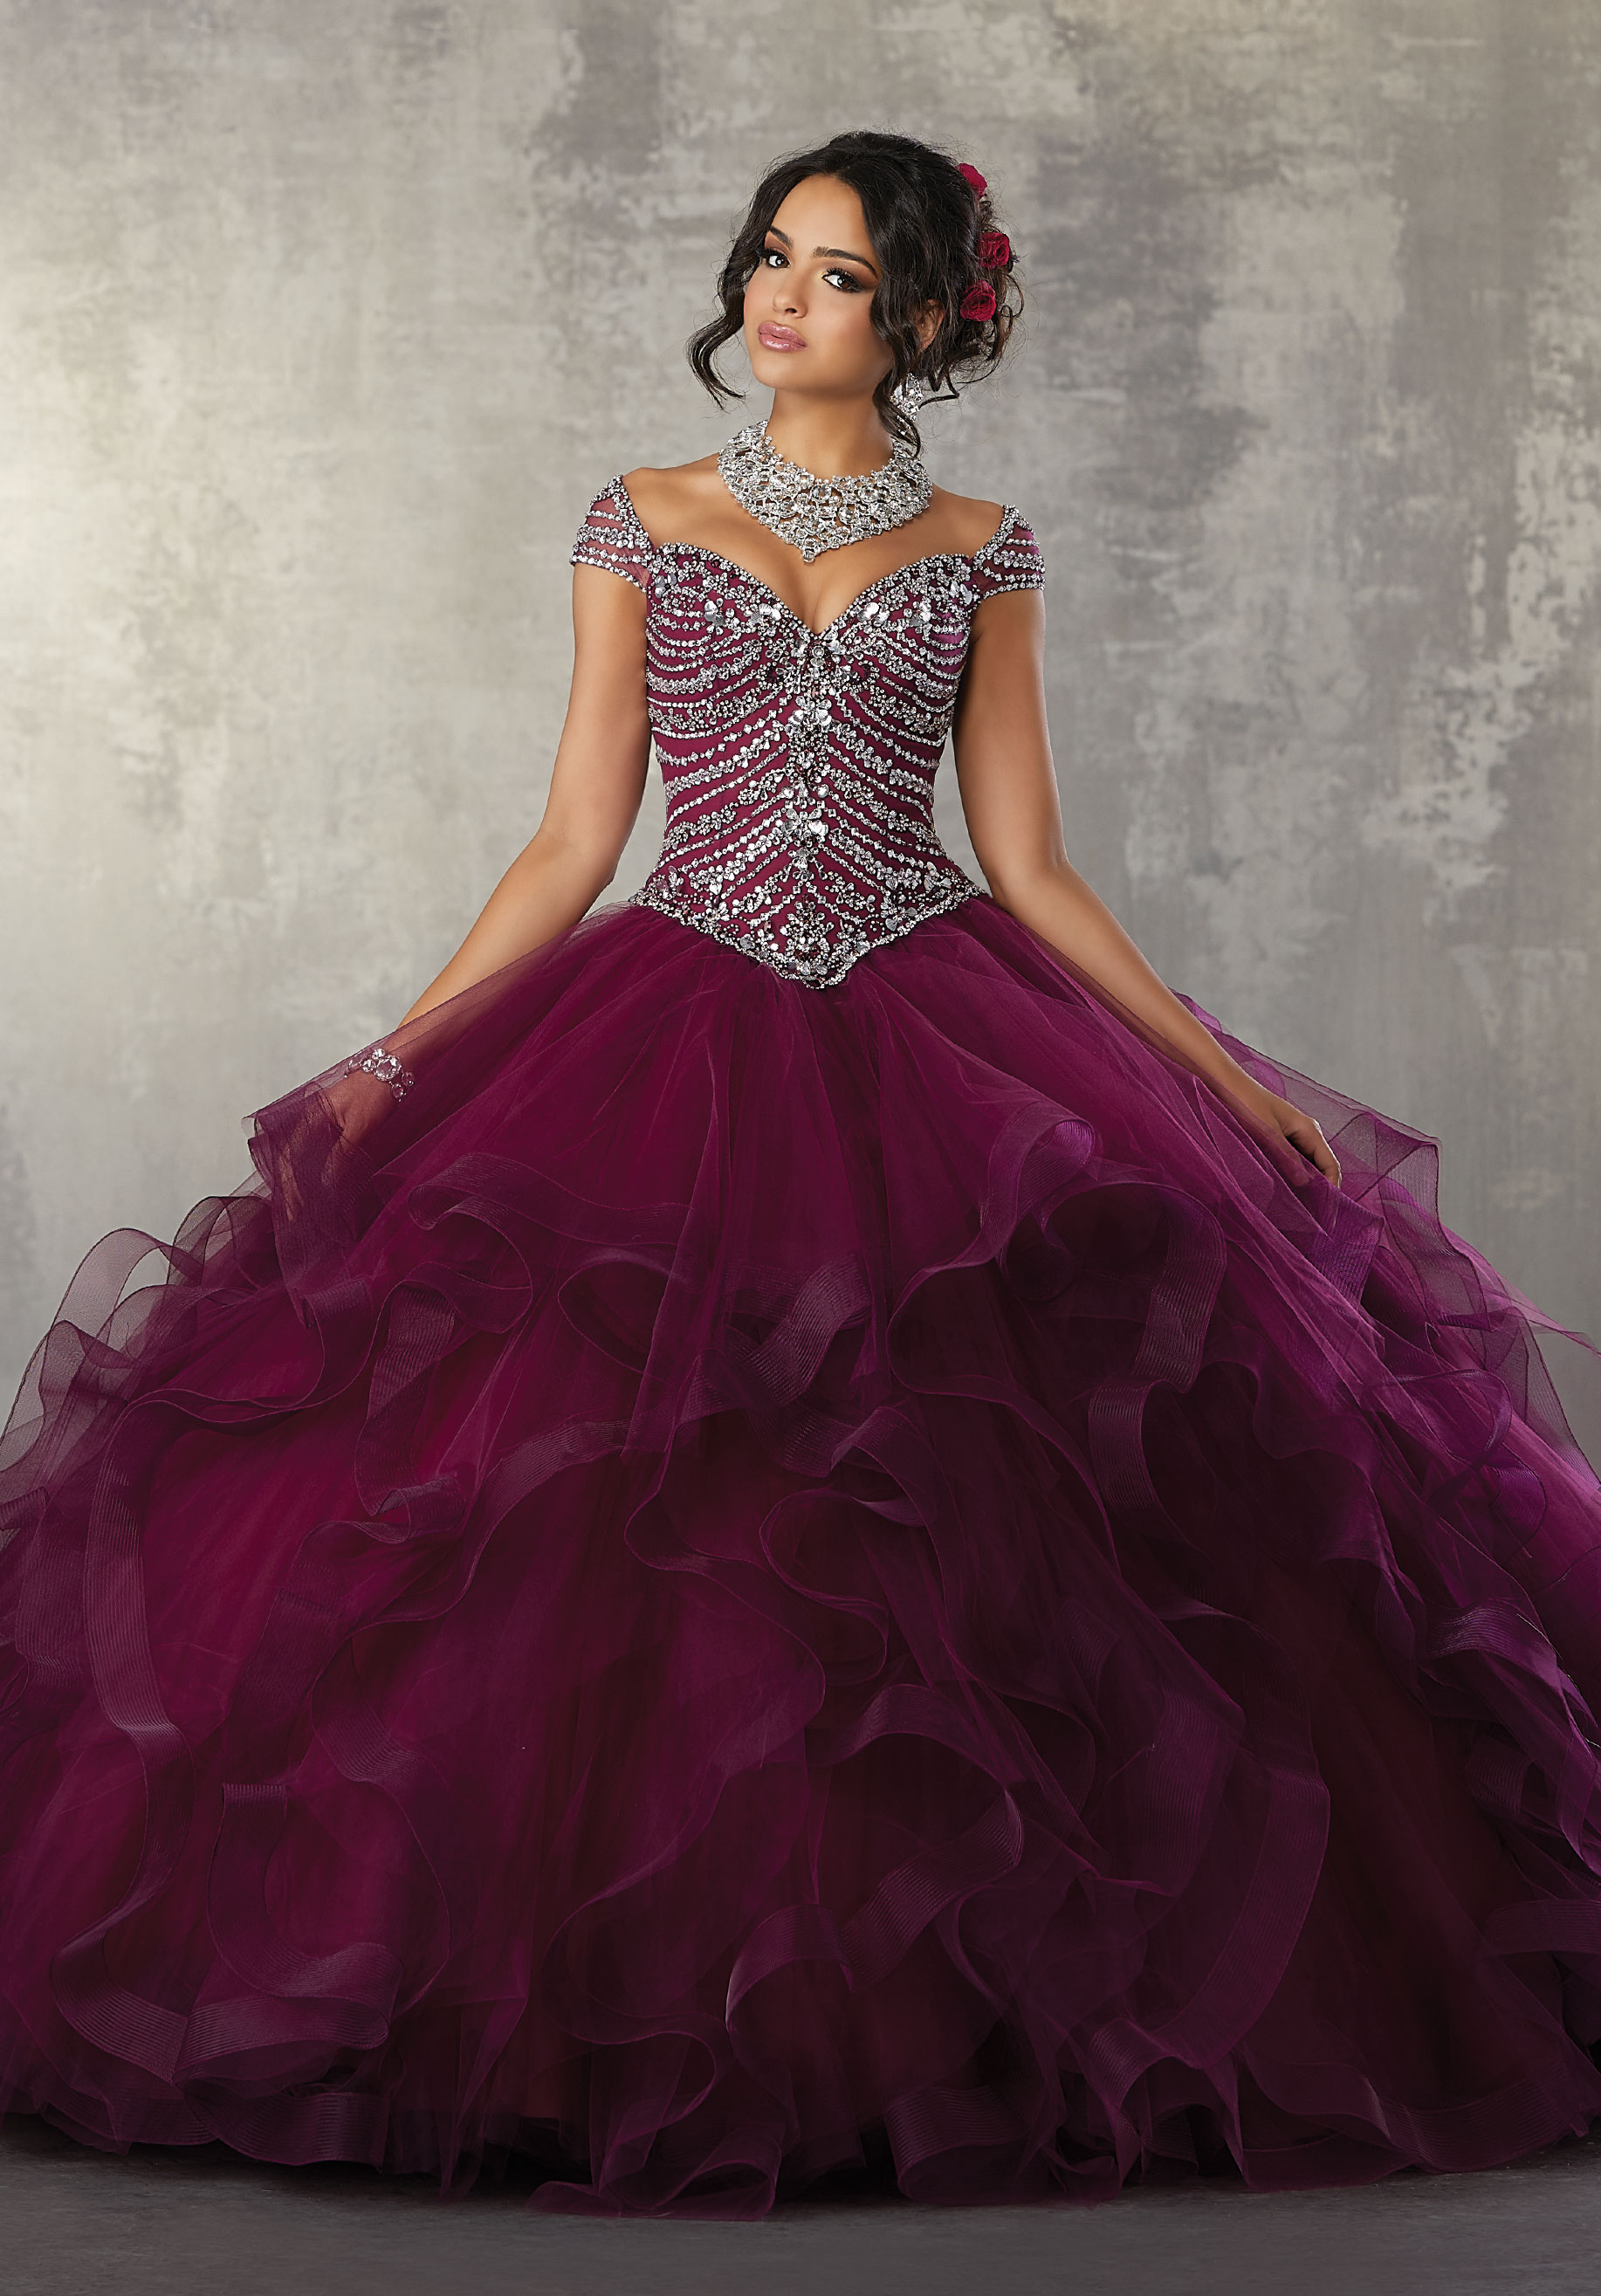 c54b047df26 26848 Quinceañera Collection Quinceanera Dresses Dresses By Russo